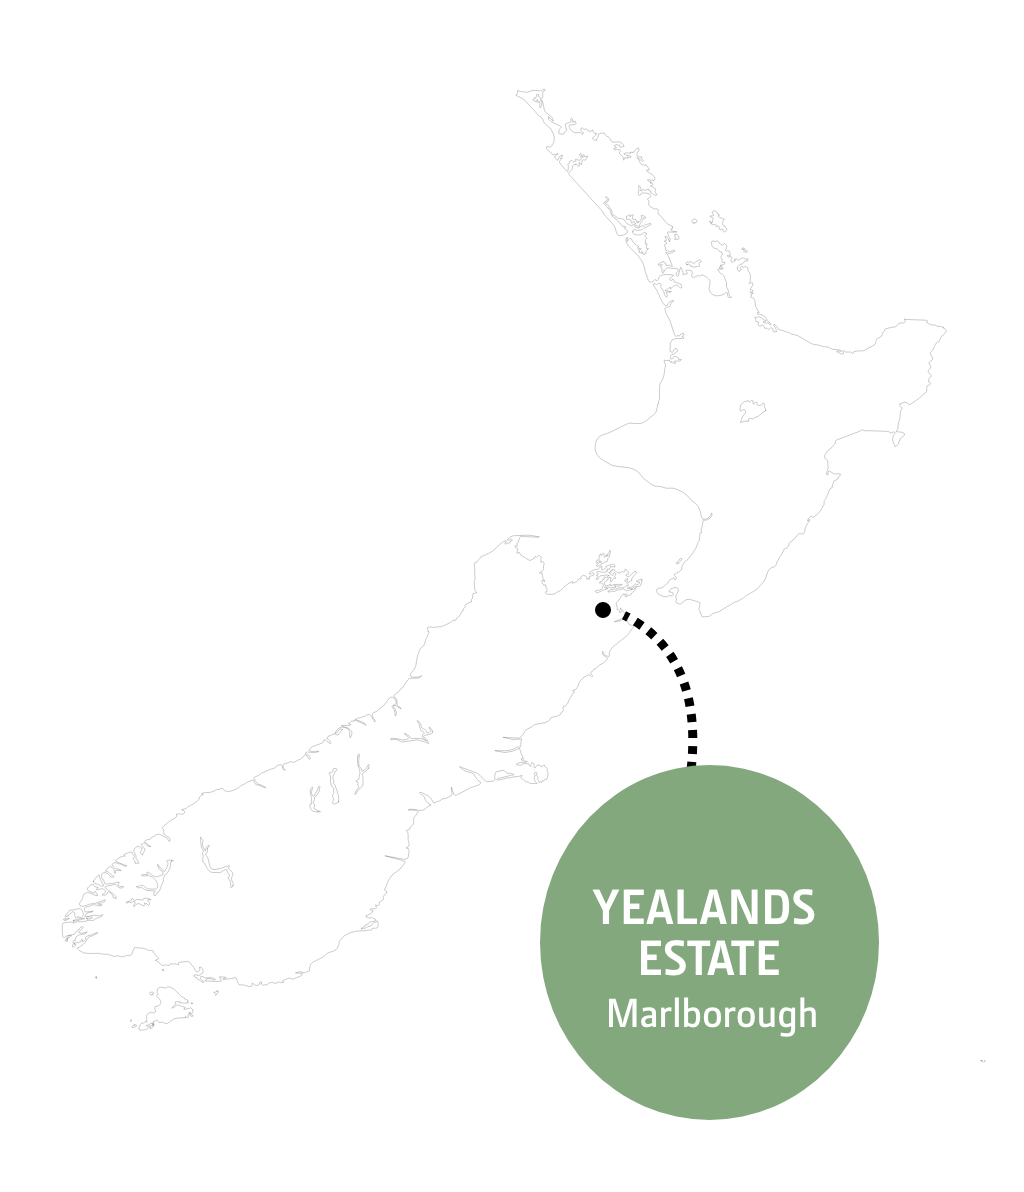 Yealands map